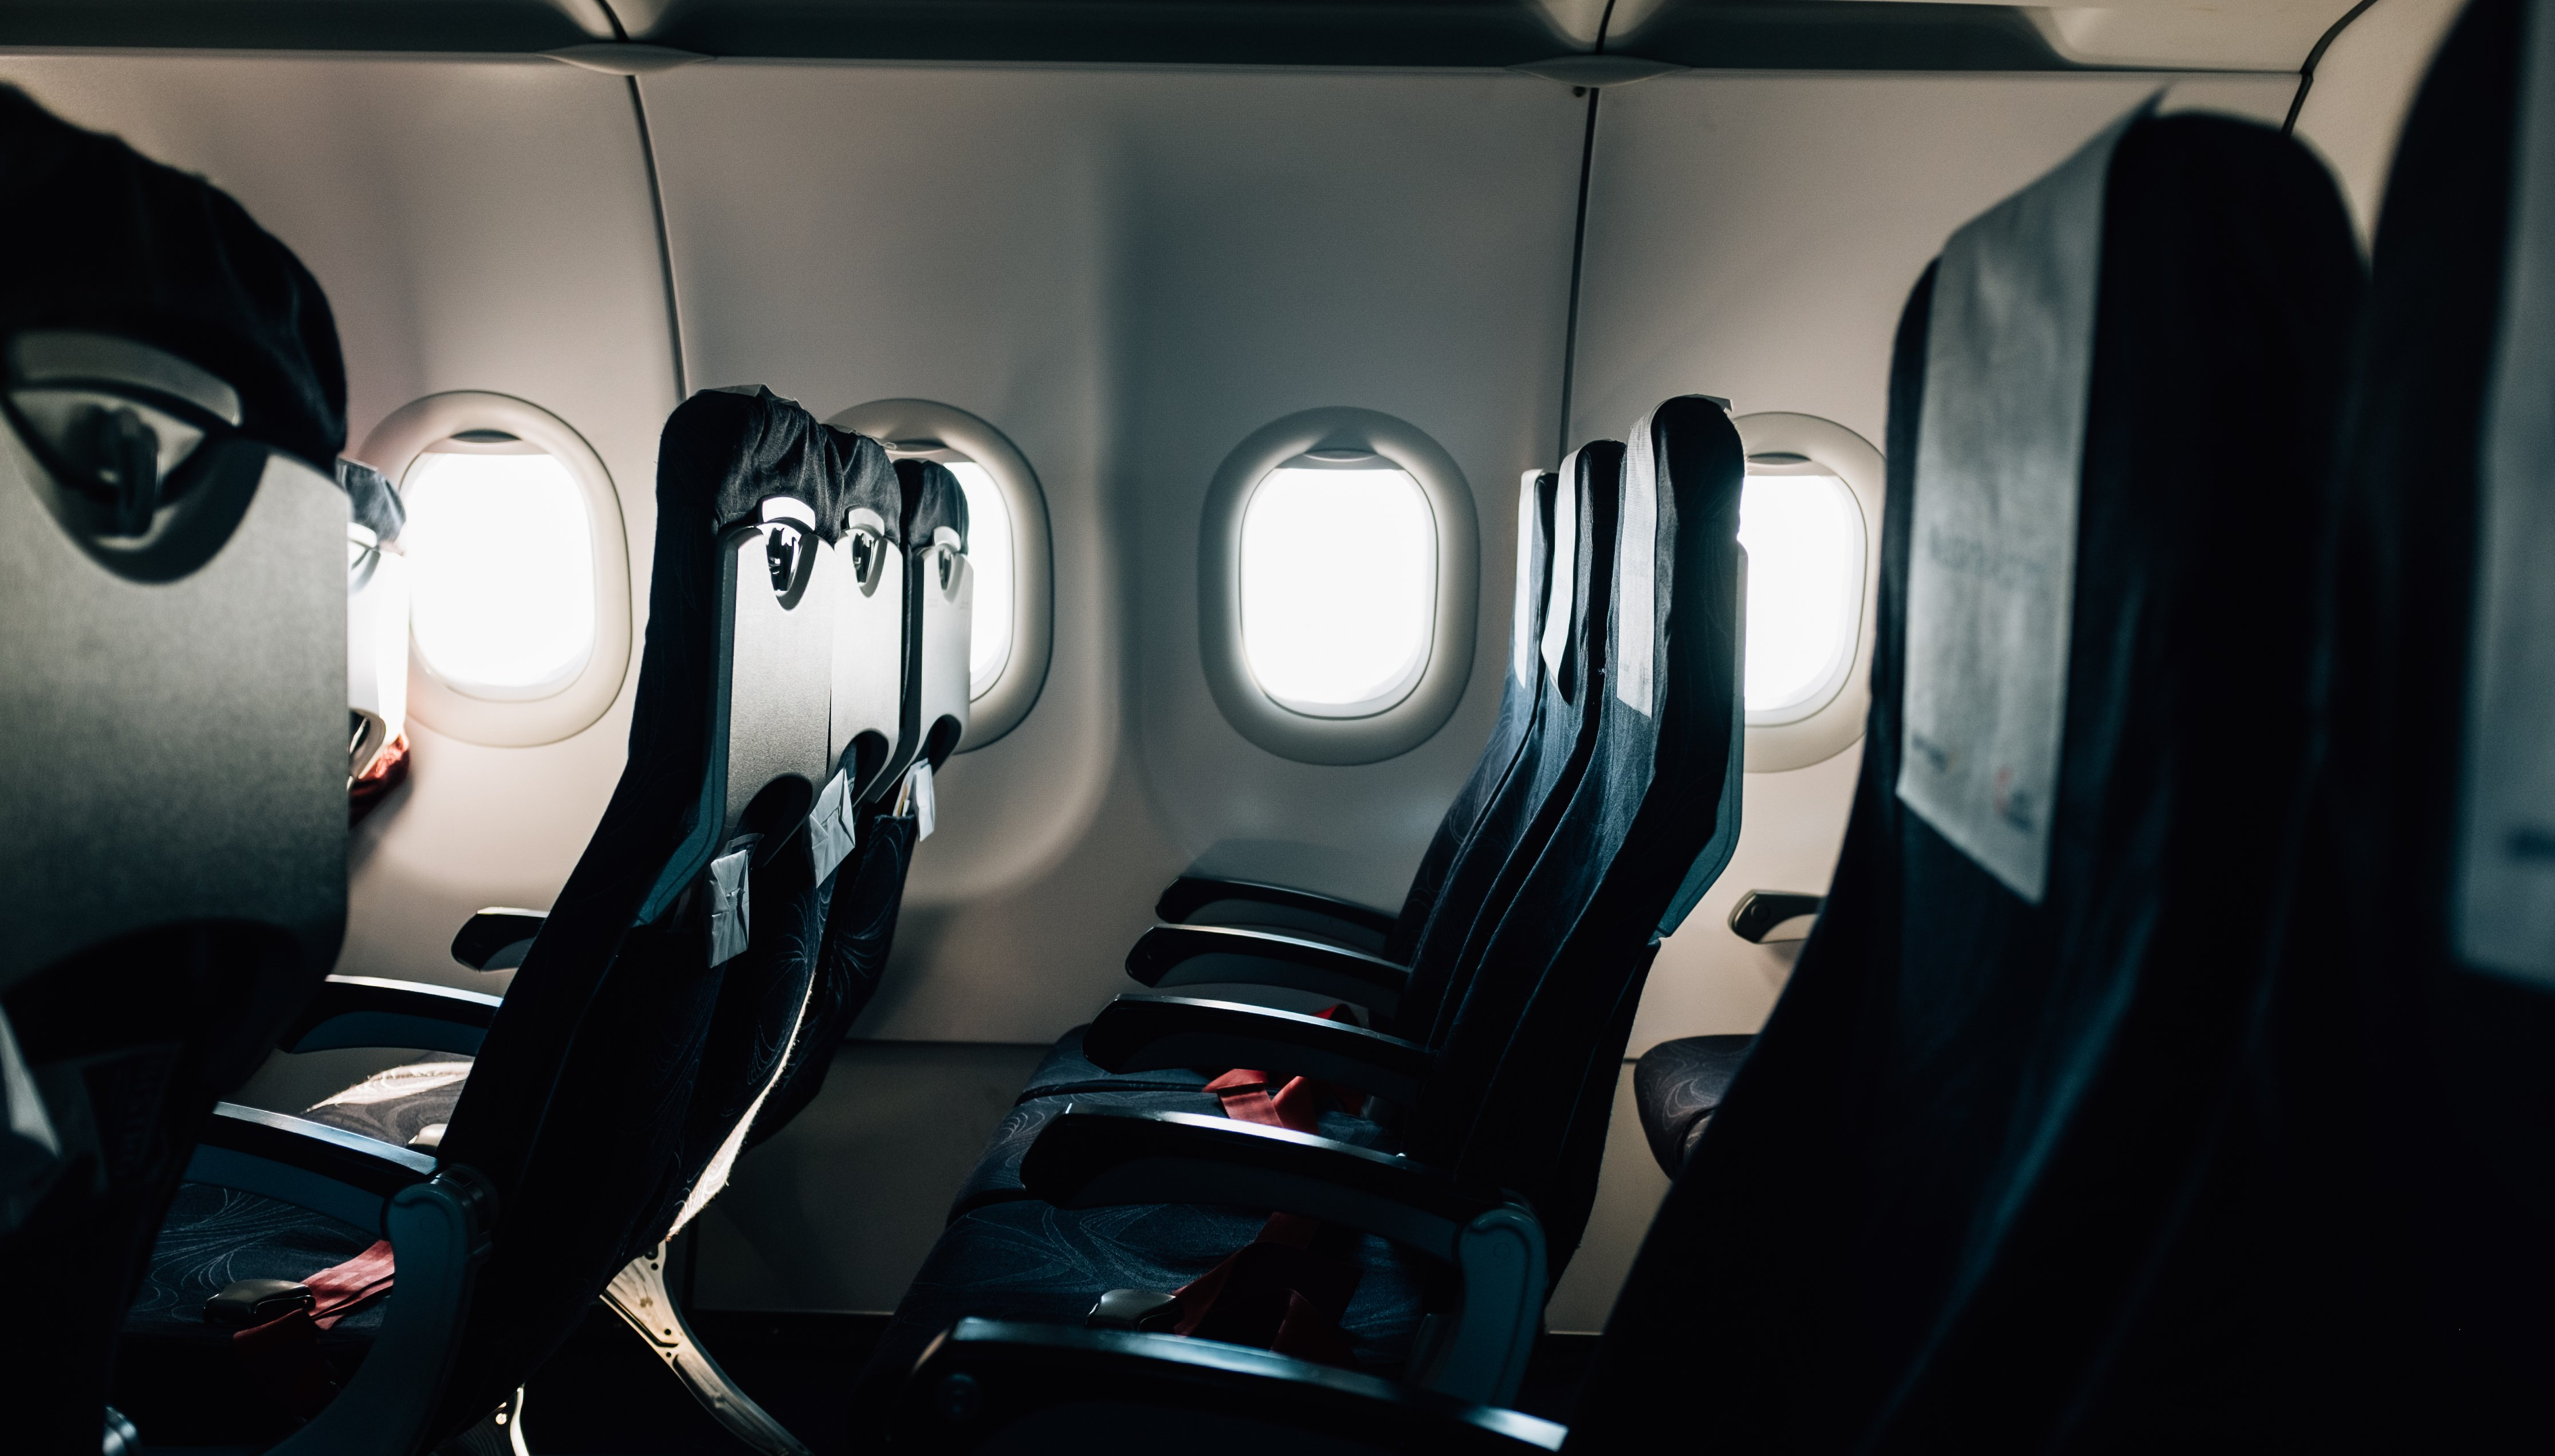 Things you should NEVER do on an airplane